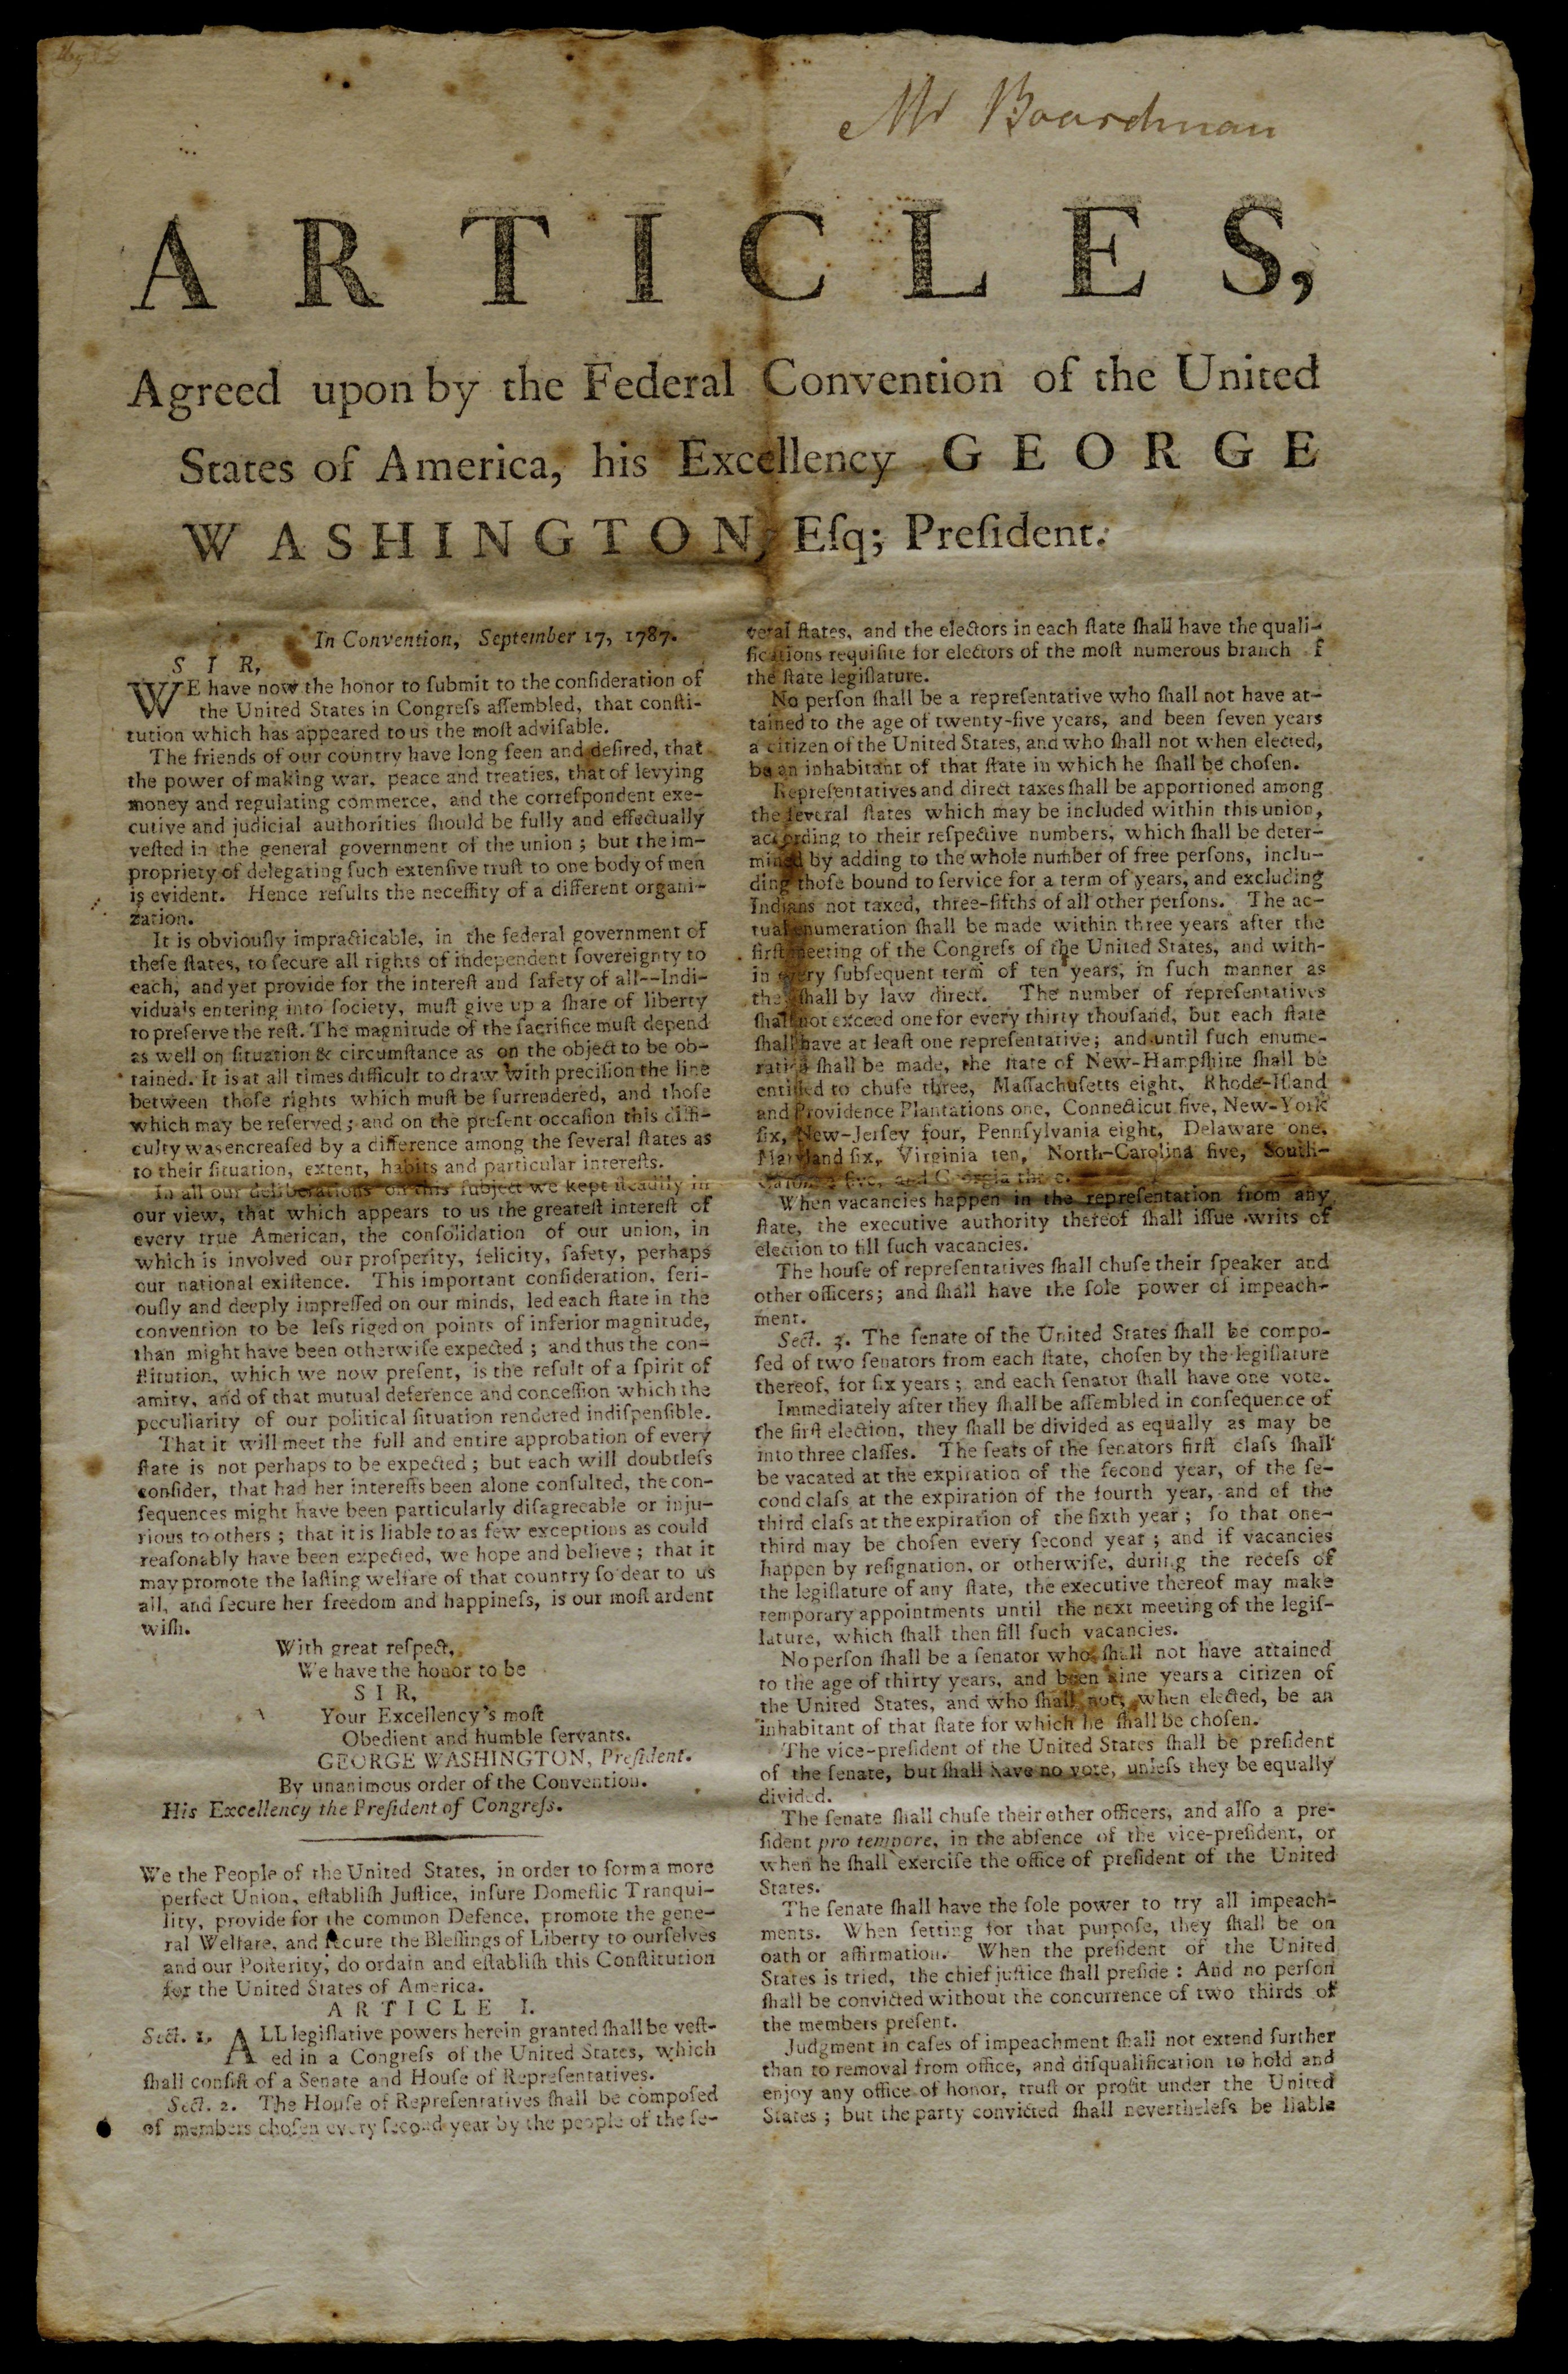 Broadside of the US Constitution, printed in 1788 (Gilder Lehrman Institute, GLC07866)